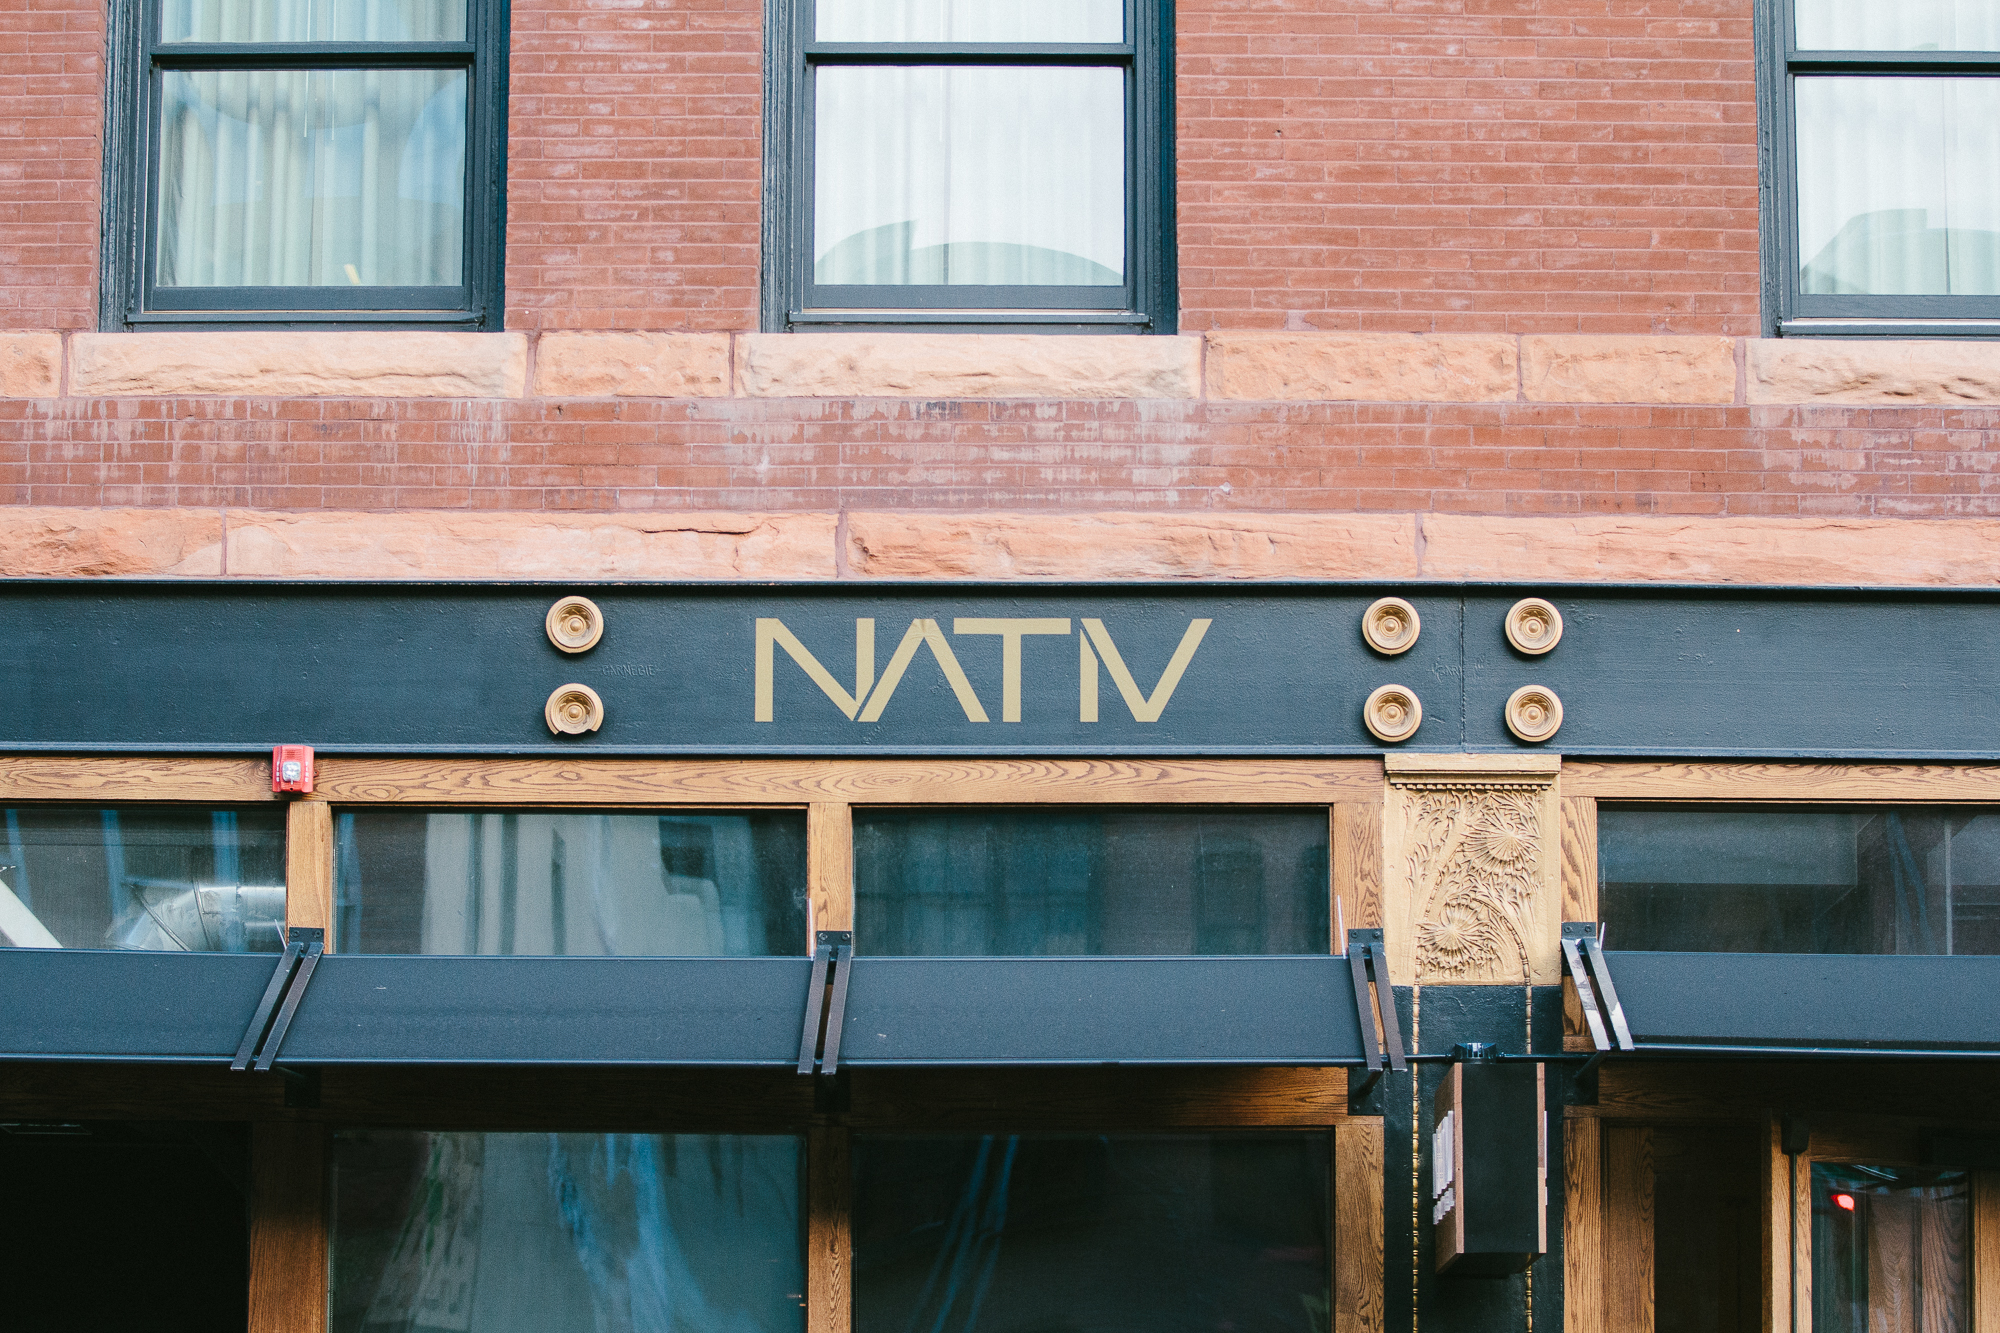 MP_DOPE LLC-BAD Party-Nativ Hotel-1474.jpg